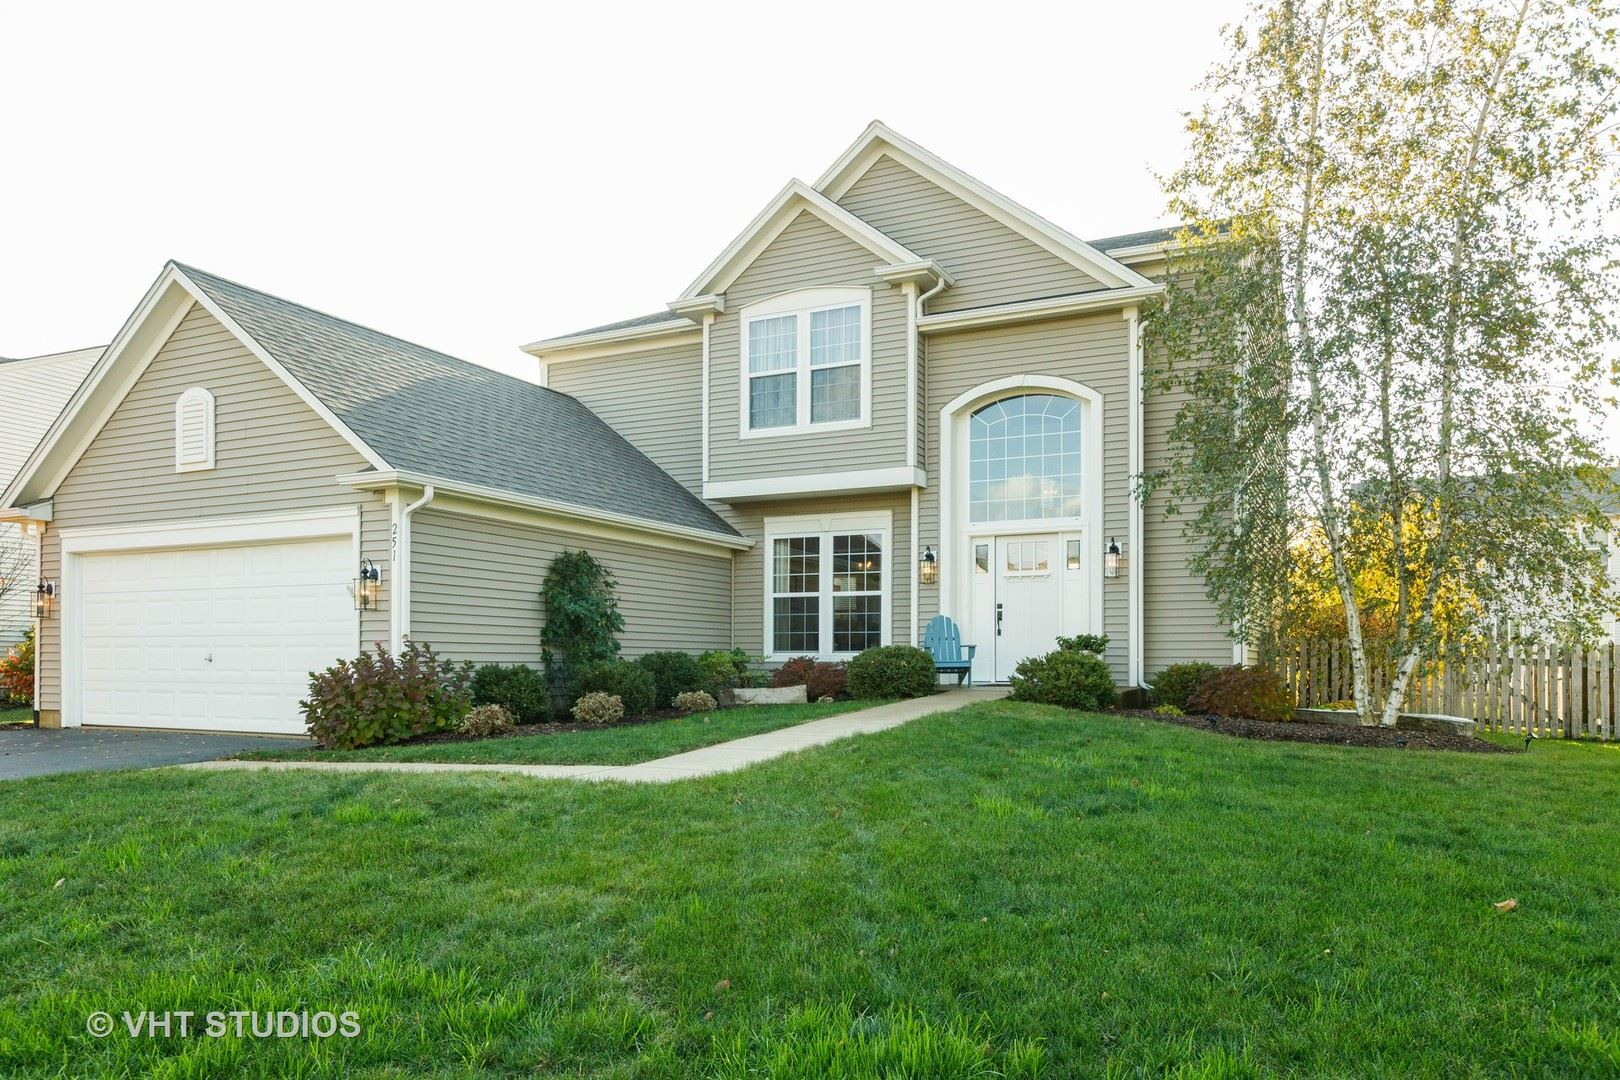 Photo of 251 Clubhouse Street, Bolingbrook, IL 60490 (MLS # 10896128)